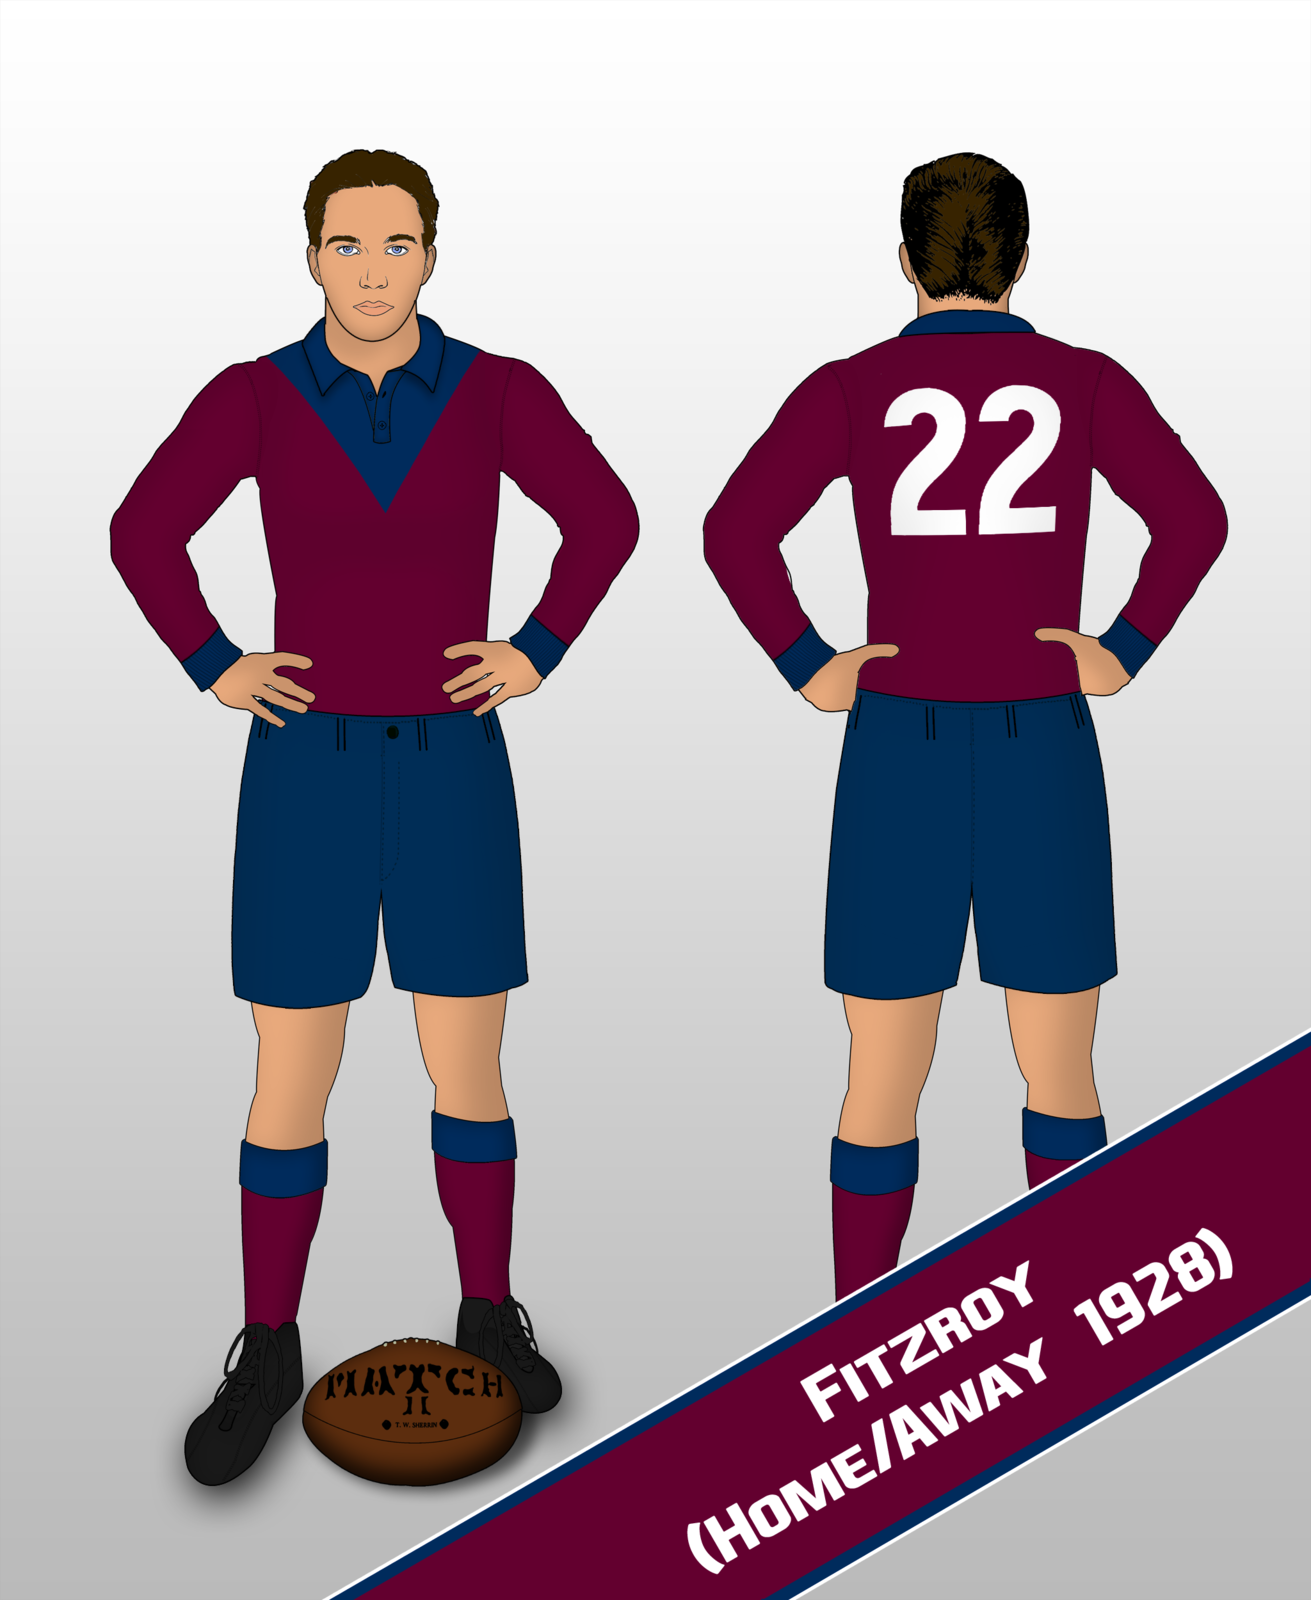 Fitzroy - 1928 Home Away.png